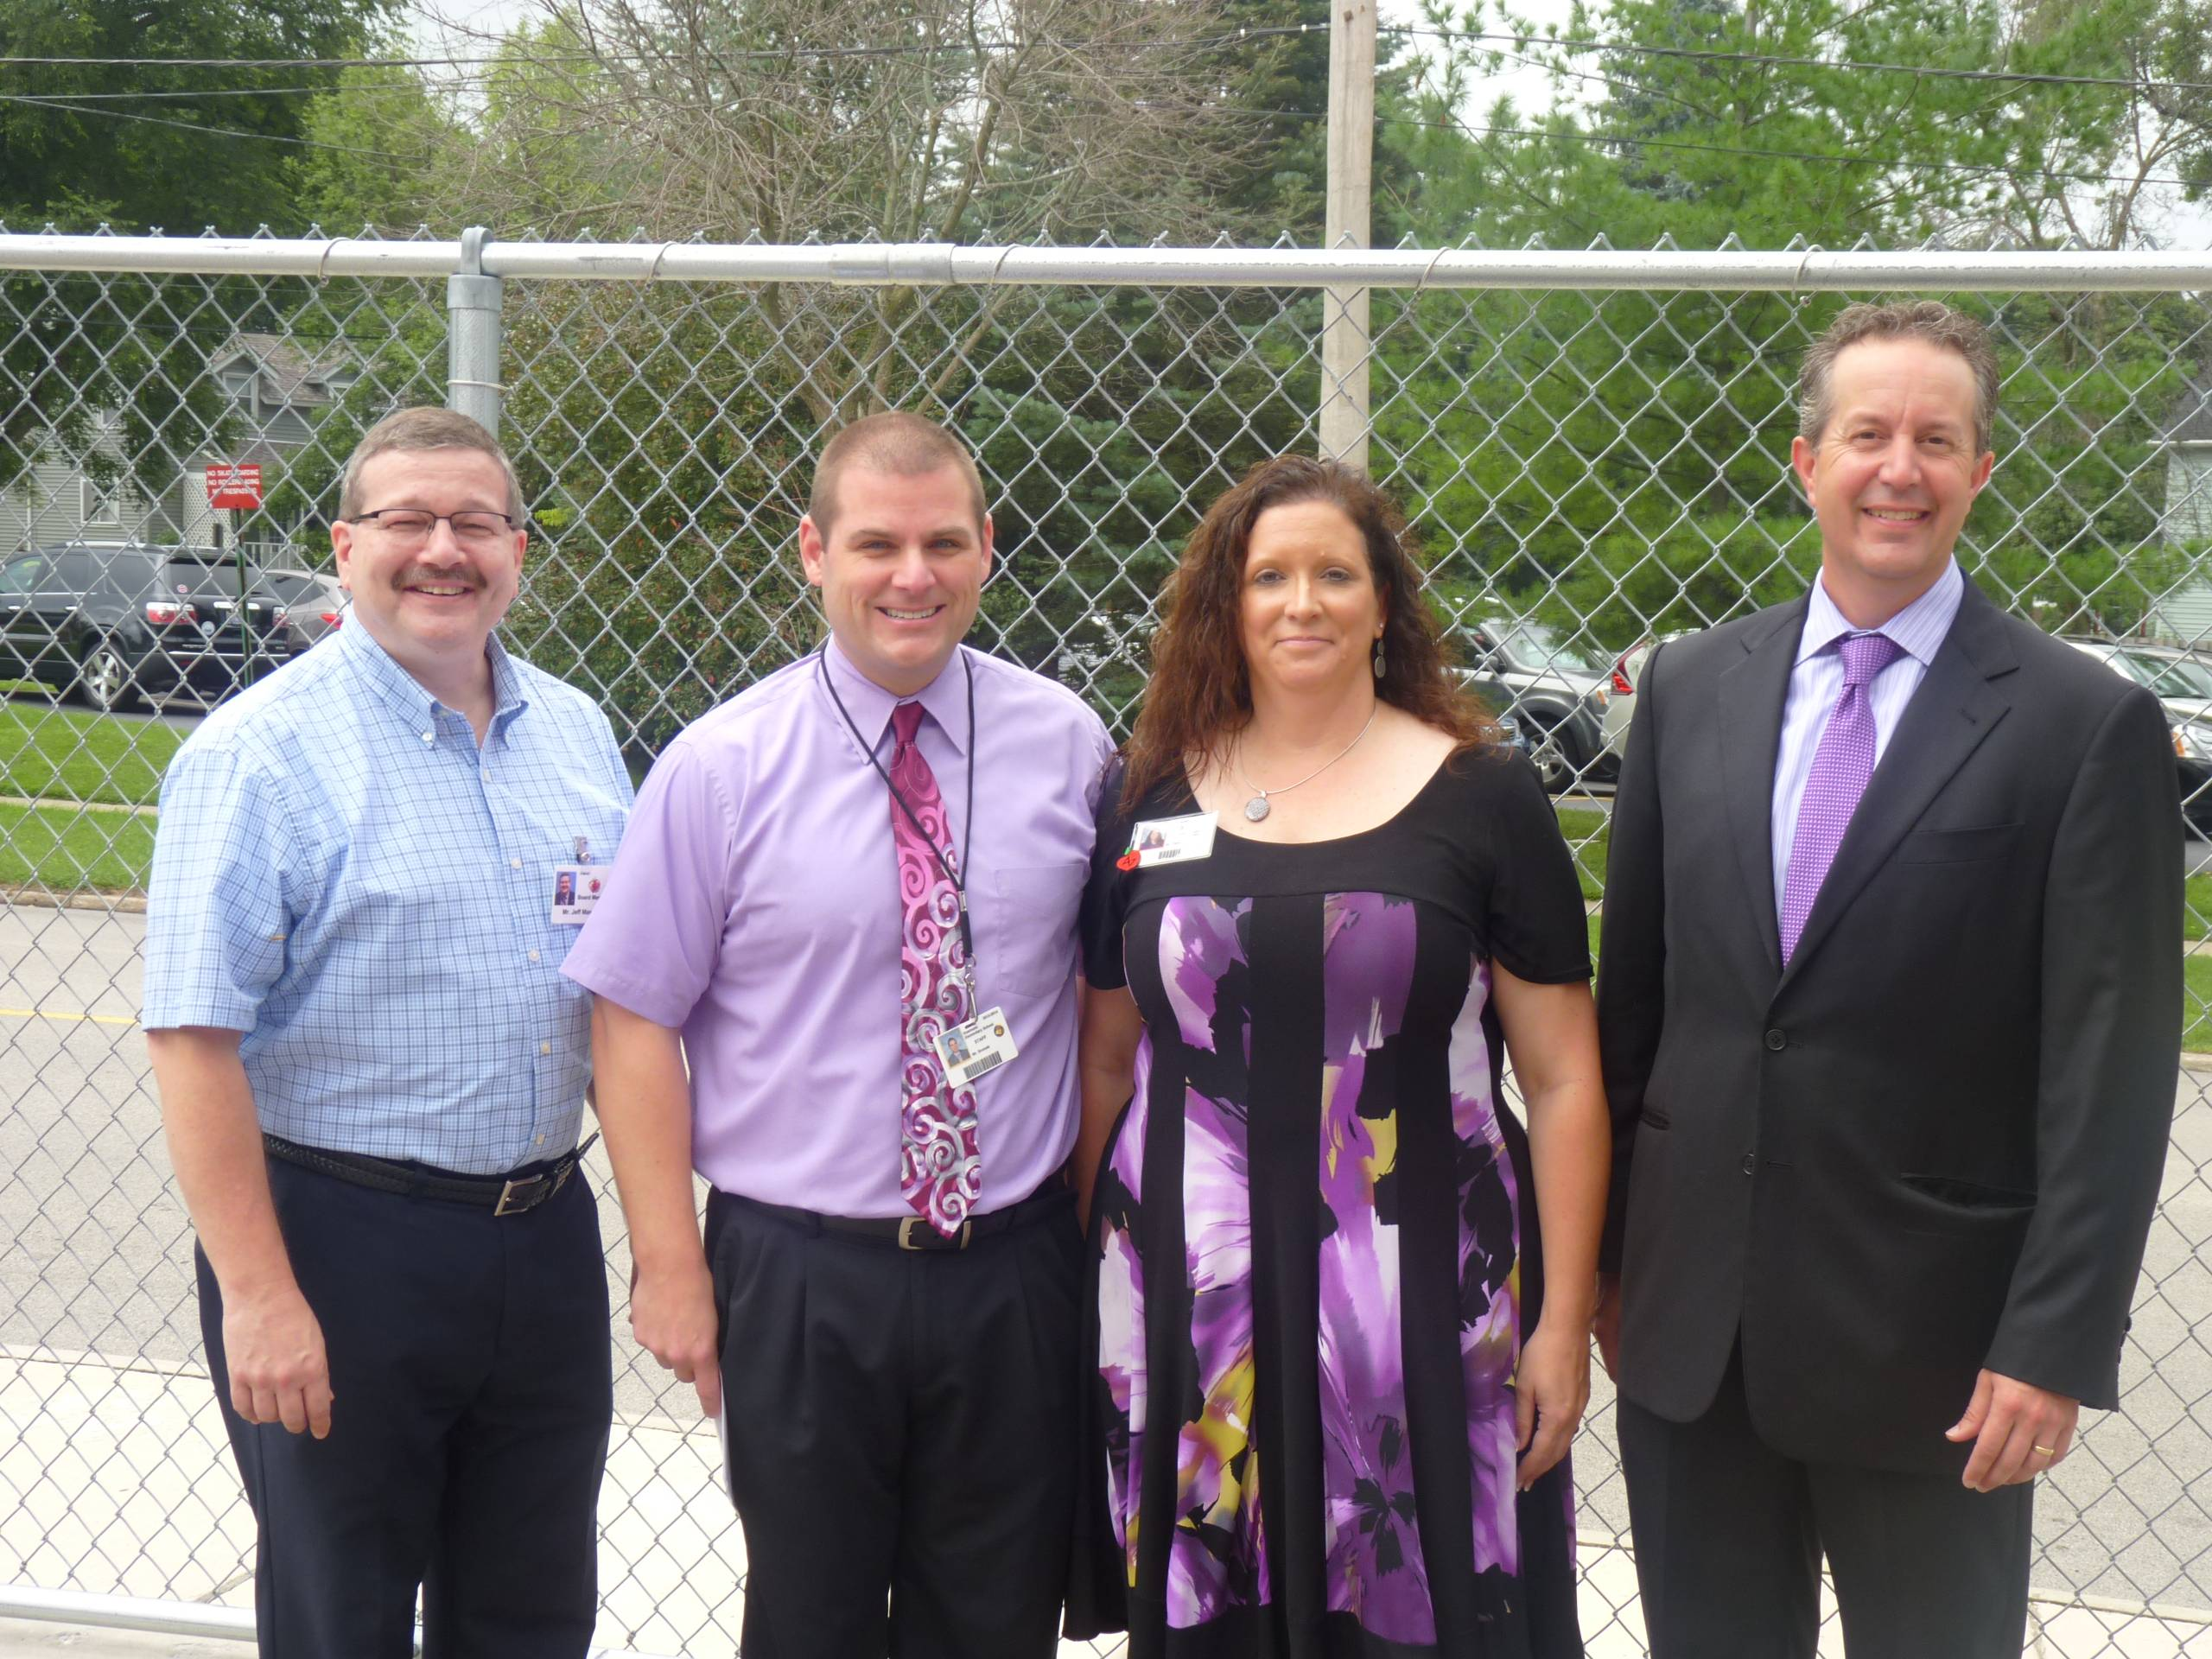 Crystal Lake Elementary District 47 board president Jeff Mason, assistant principal Guy Sromek, superintendent Kathy Hinz and Crystal Lake Mayor Aaron Shepley welcome students back to school at Husmann Elementary.